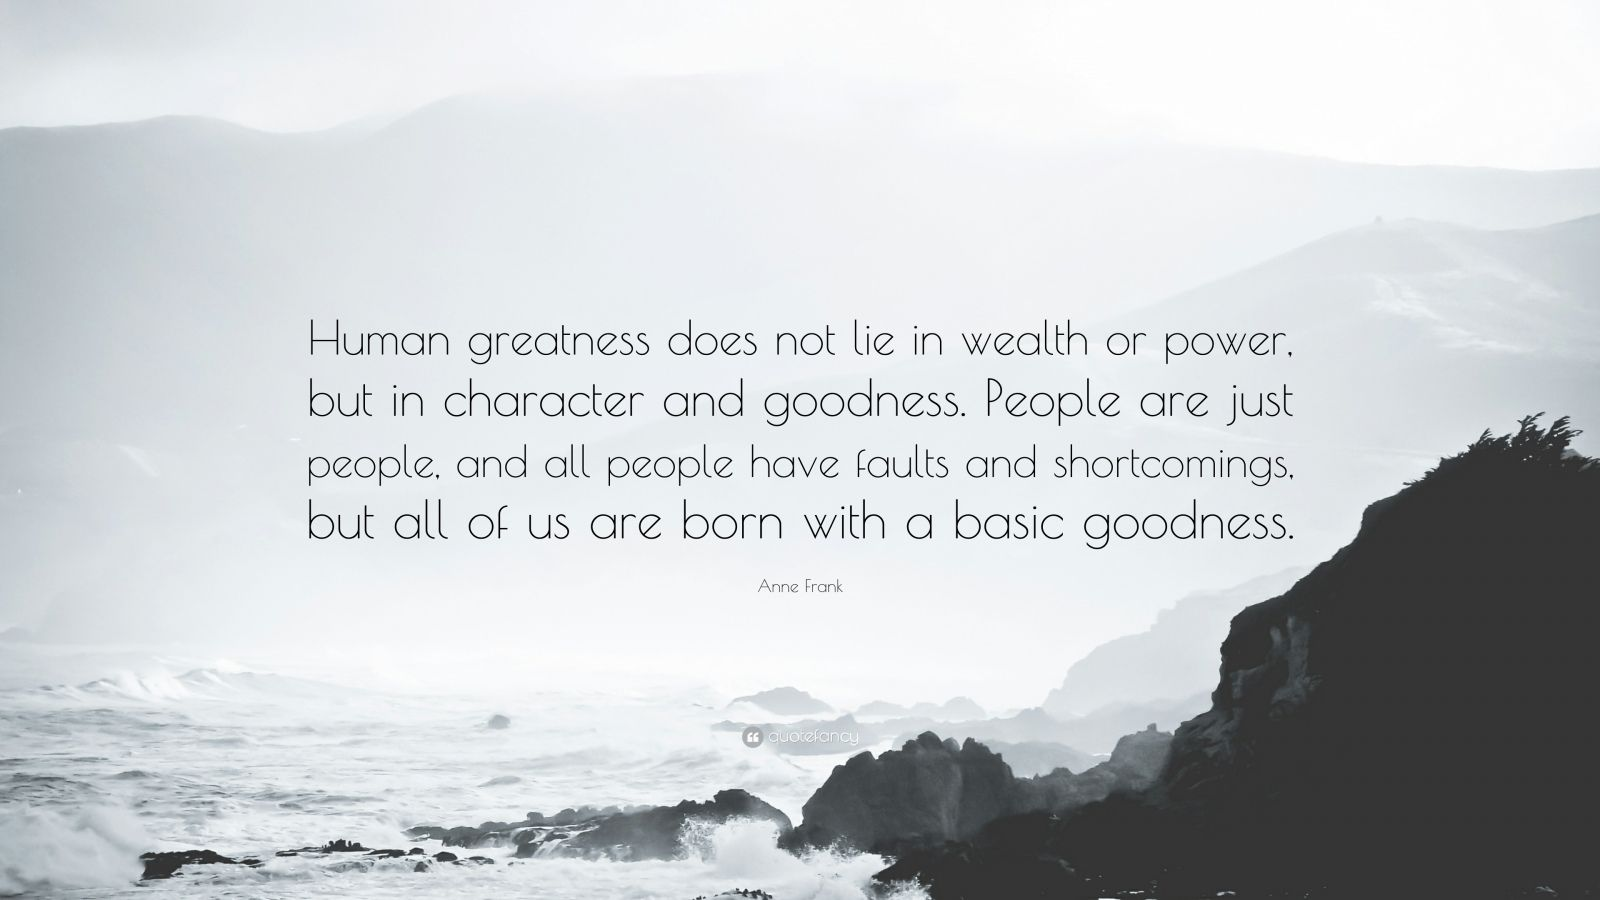 """Anne Frank Quote: """"Human greatness does not lie in wealth or power, but in character and goodness. People are just people, and all people have faults and shortcomings, but all of us are born with a basic goodness."""""""